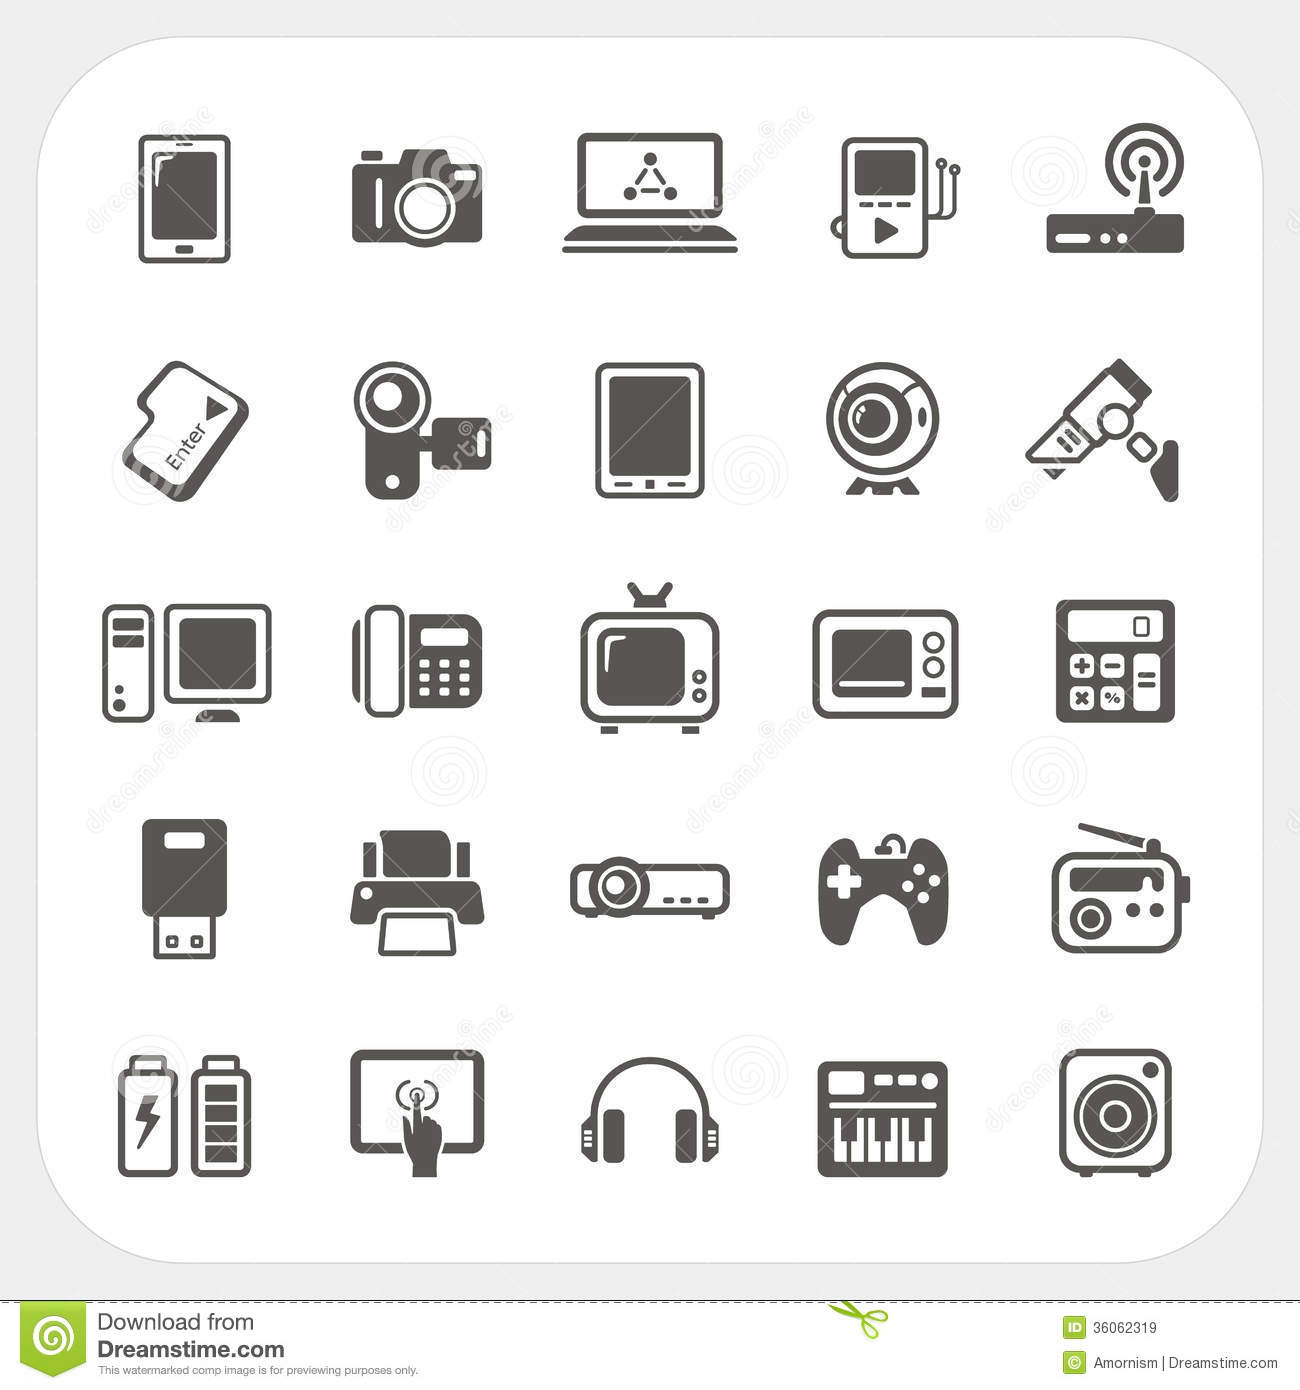 Electronics clipart free banner black and white download Electronics clipart free - ClipartFest banner black and white download